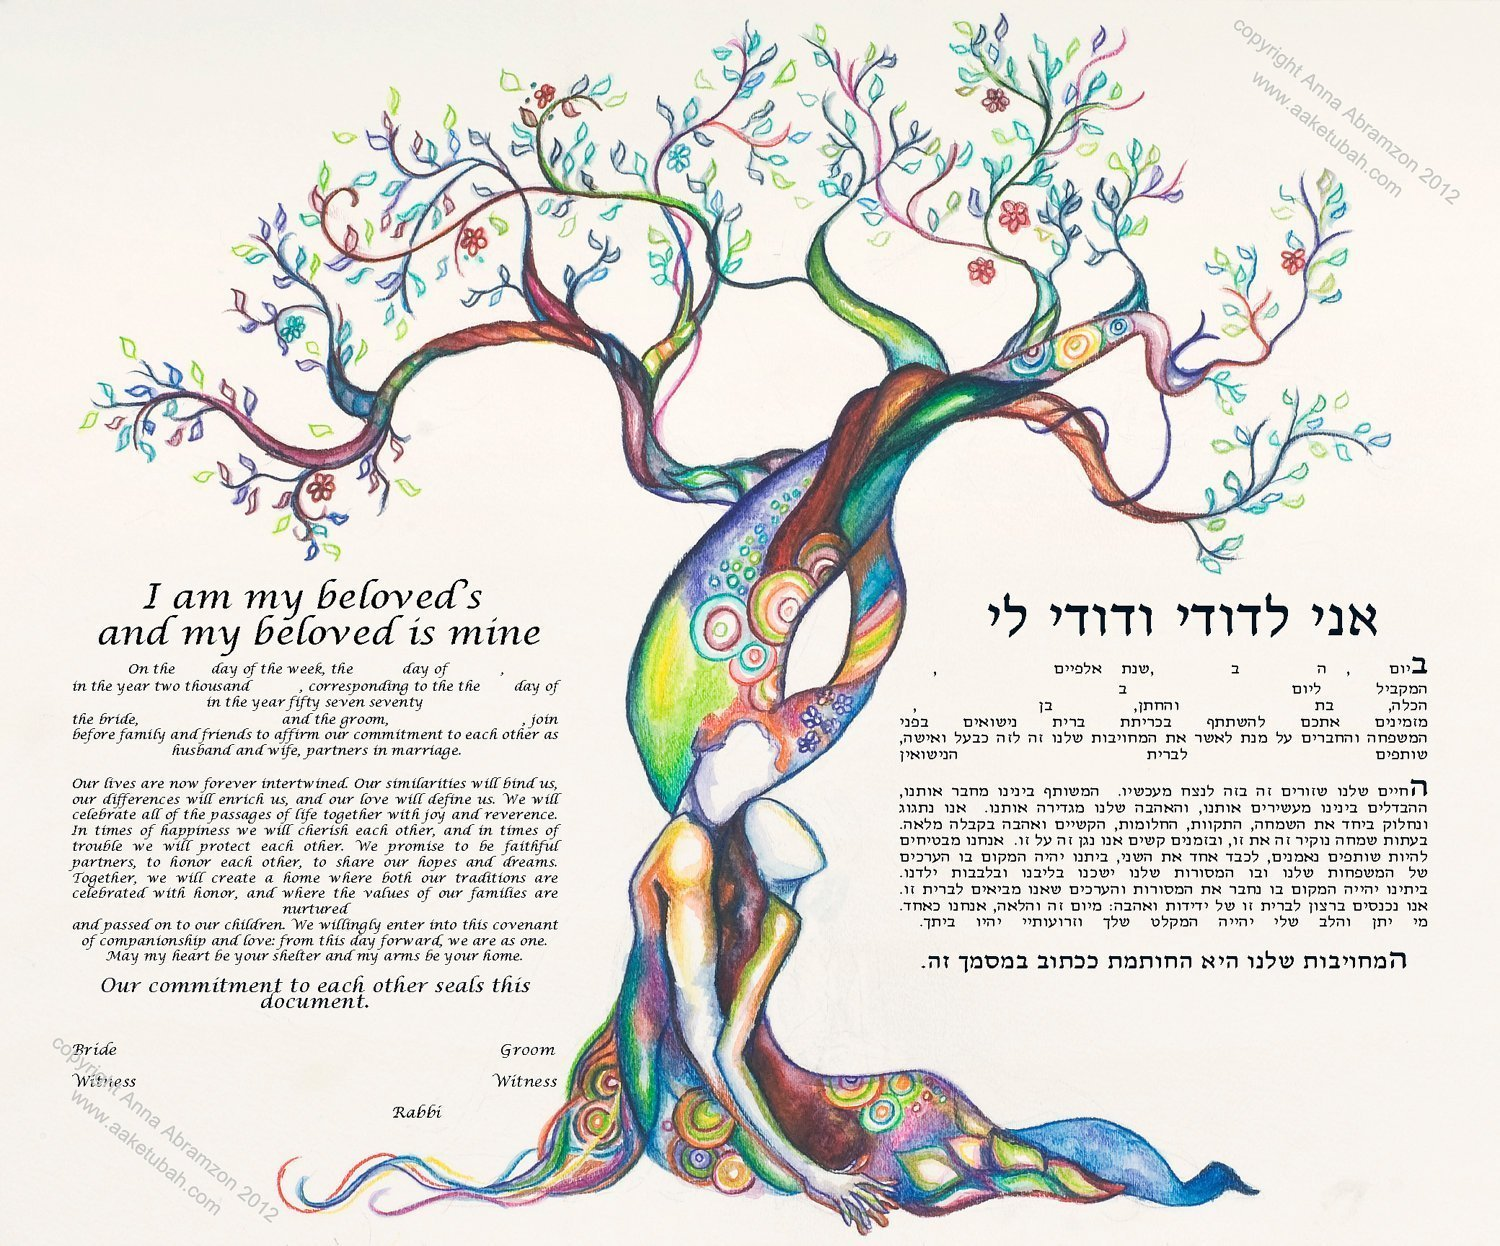 Love Tree Ketubah Marriage Contract